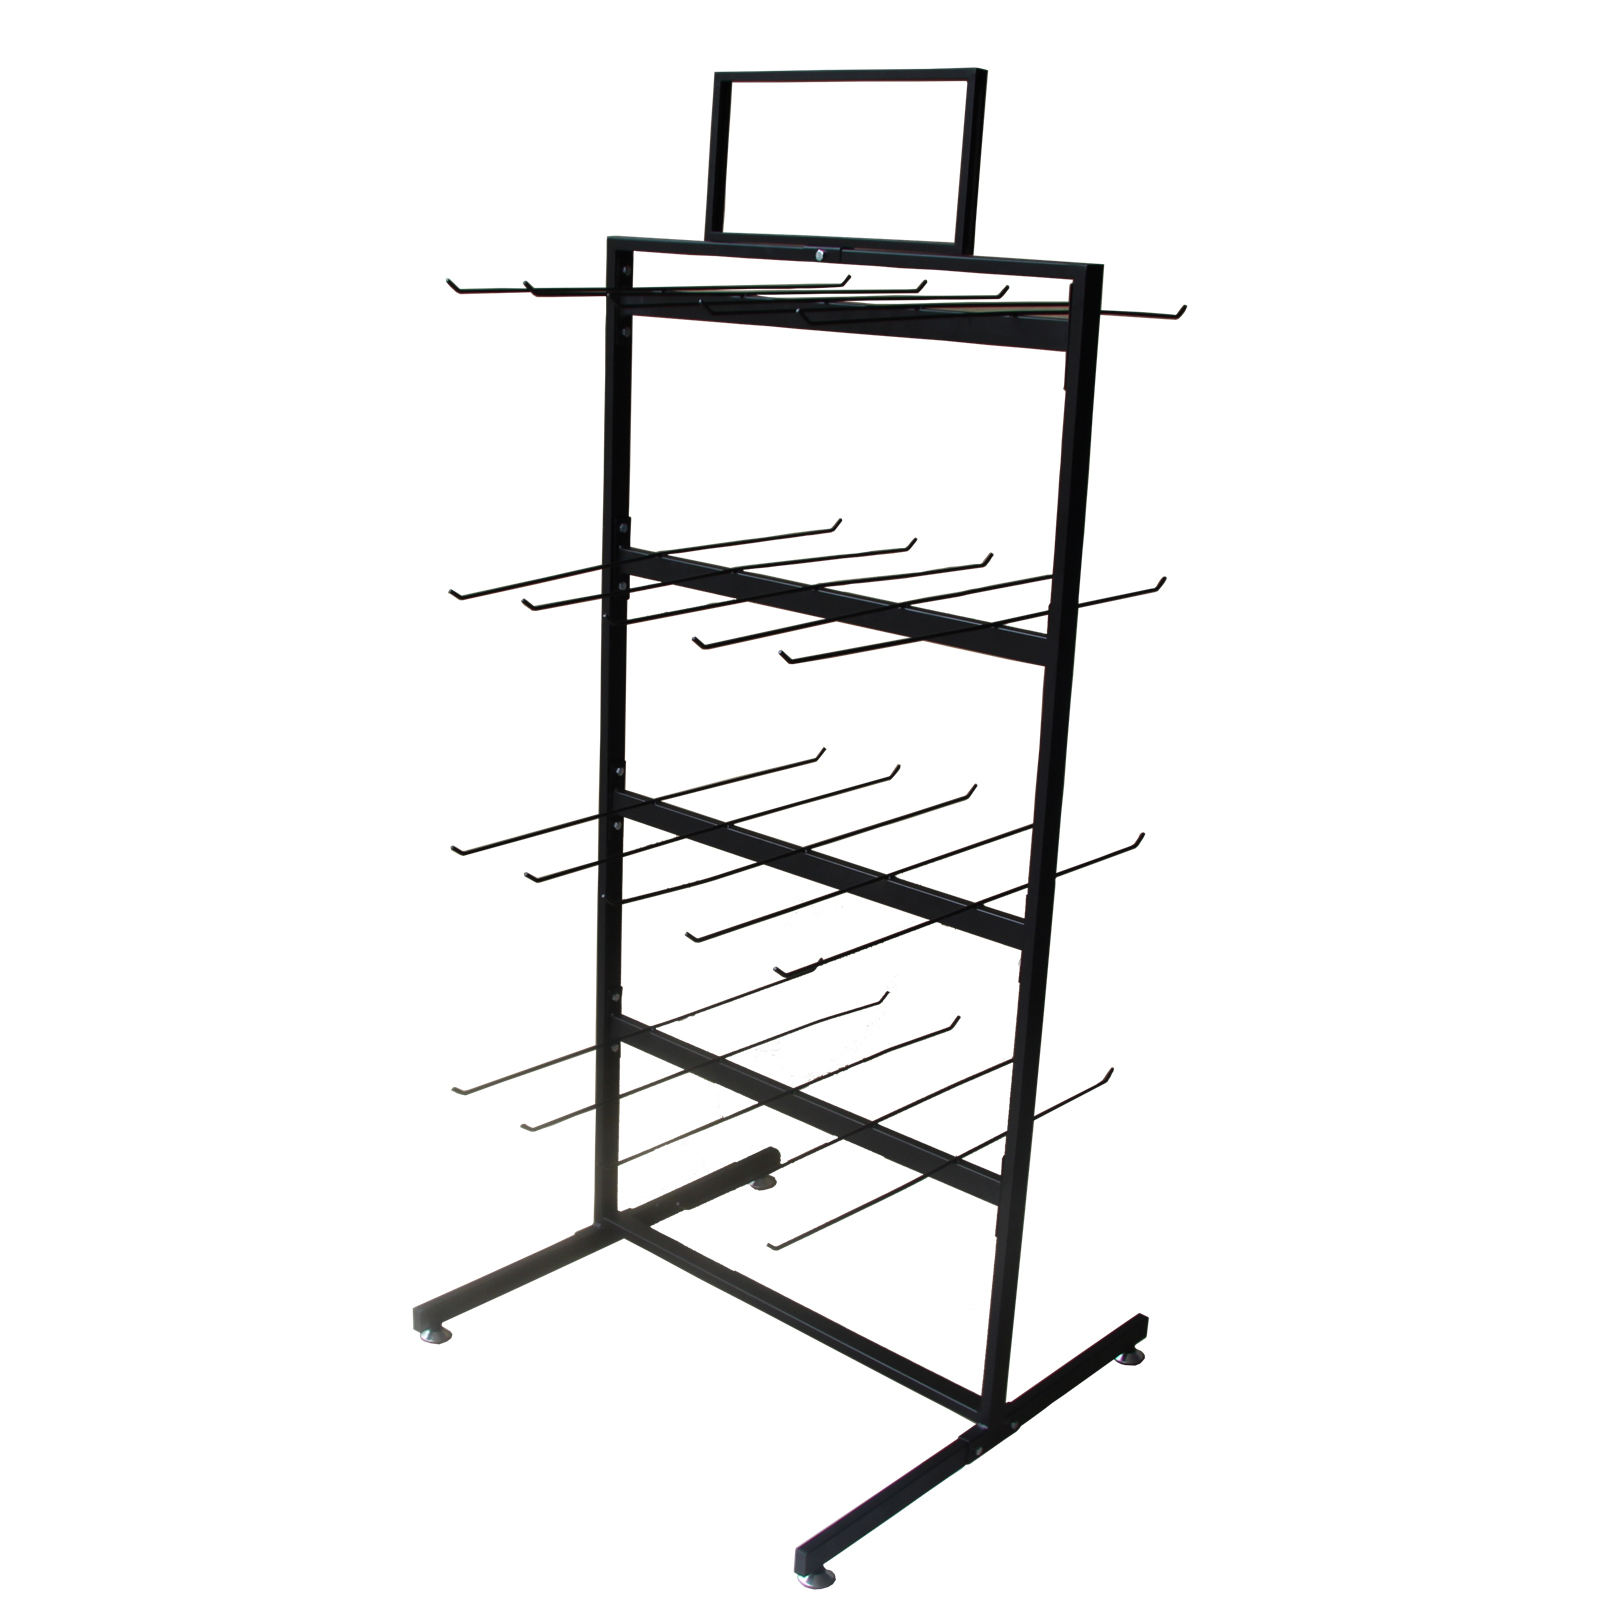 Supermarket racking shevles double-sided bag snack food display stand retail hanging display sample display rack